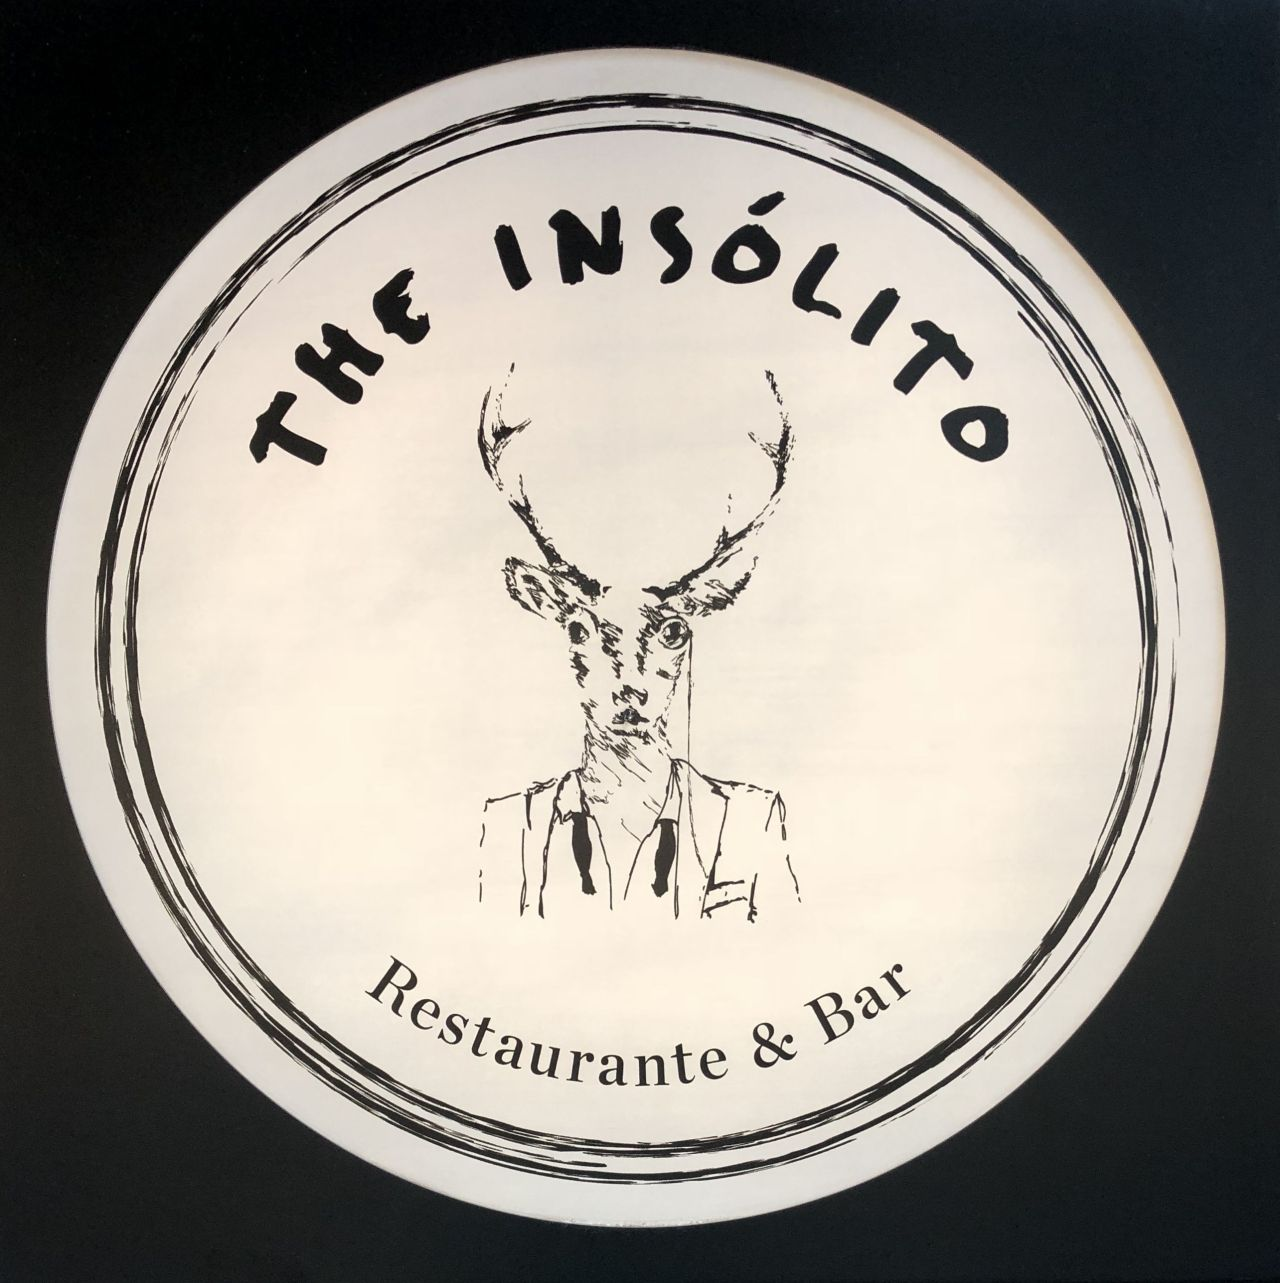 The Insólito